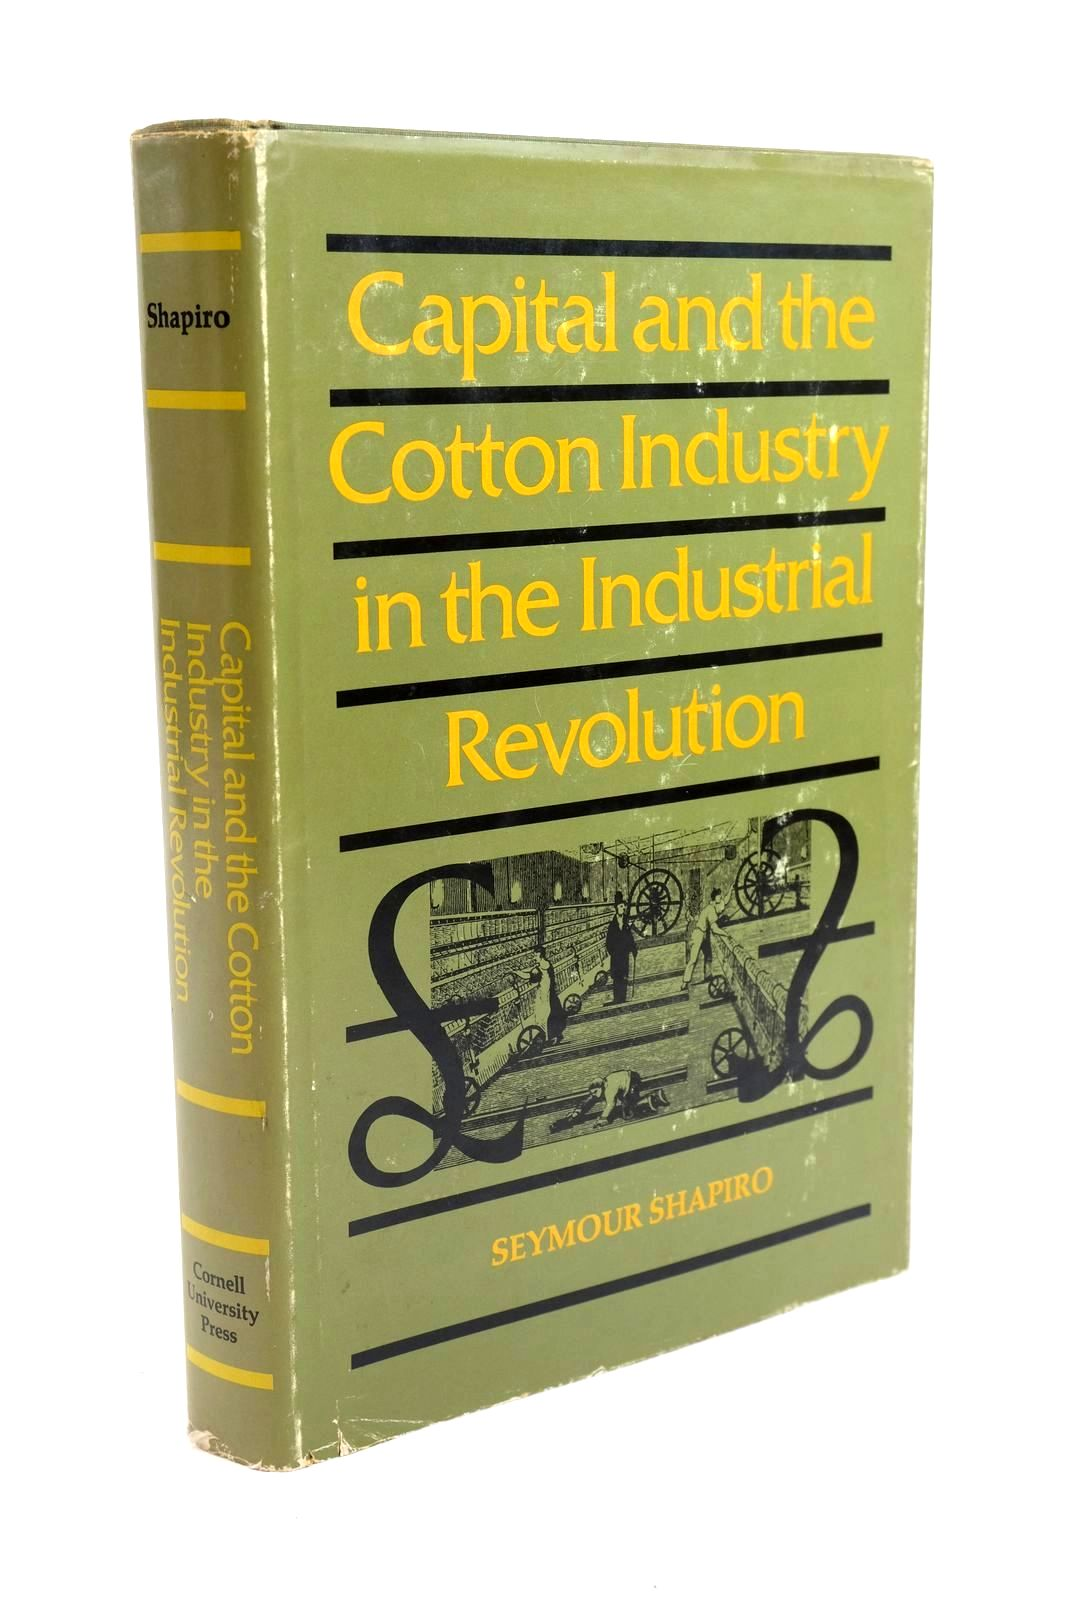 Photo of CAPITAL AND THE COTTON INDUSTRY IN THE INDUSTRIAL REVOLUTION written by Shapiro, Seymour published by Cornell University Press (STOCK CODE: 1321497)  for sale by Stella & Rose's Books